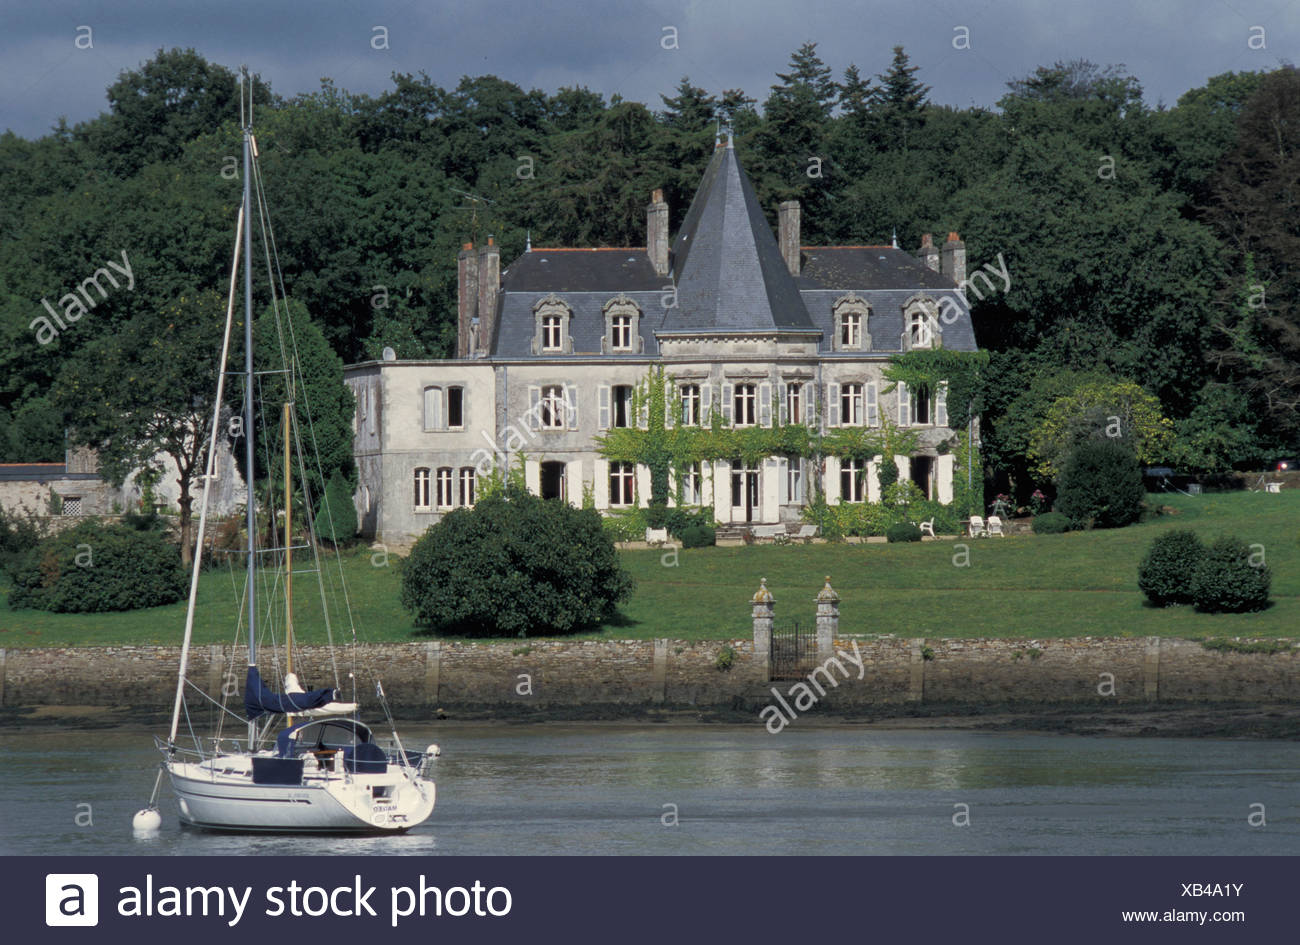 Chateau, Odet, river, Sail Boat, Brittany, France, Europe, river - Stock Image